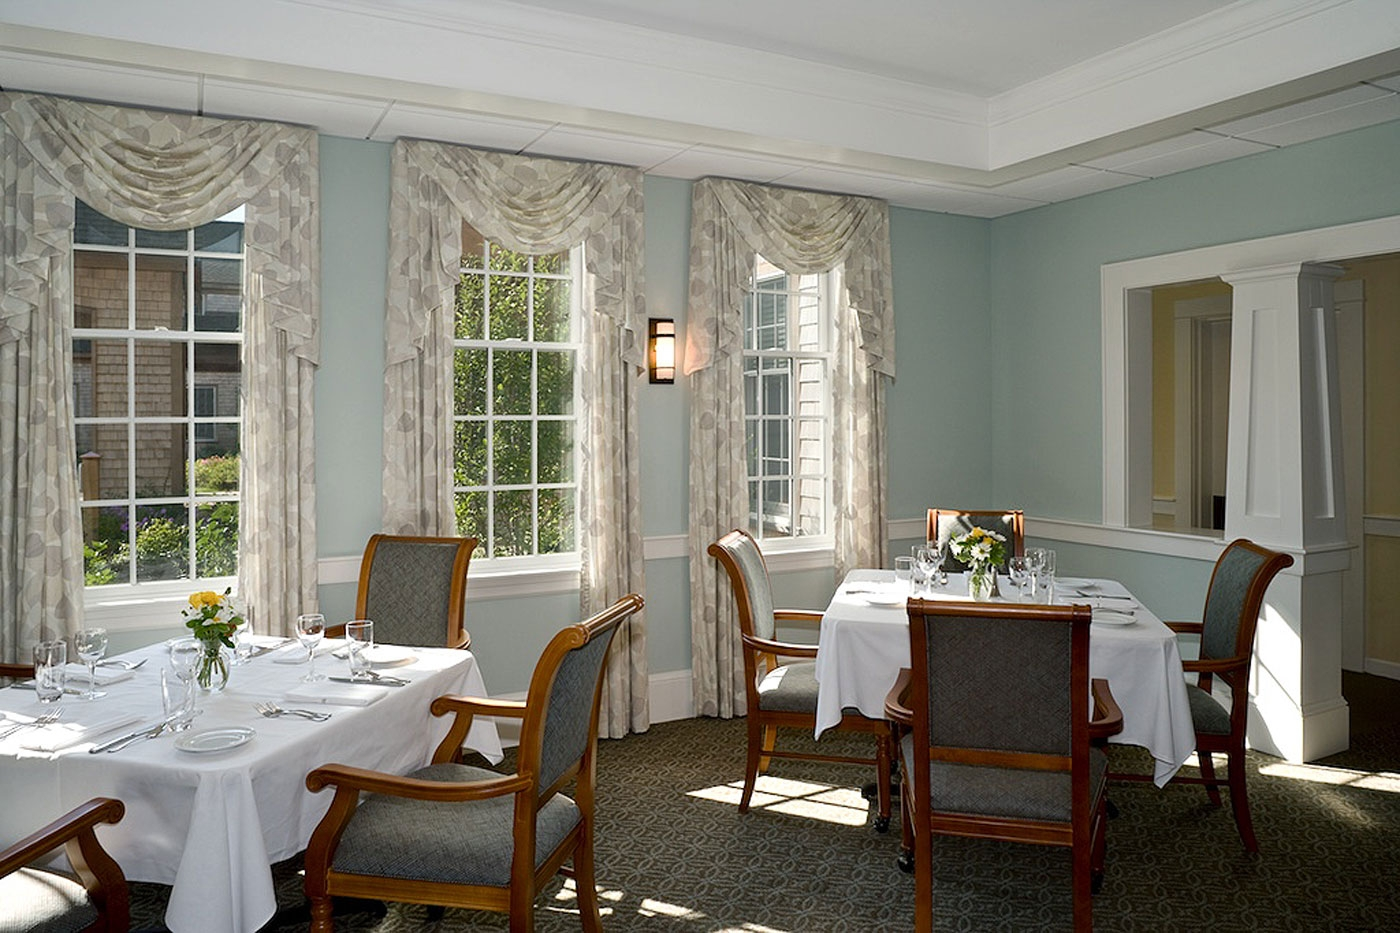 Dining area interior design for this community in Nantucket, MA.